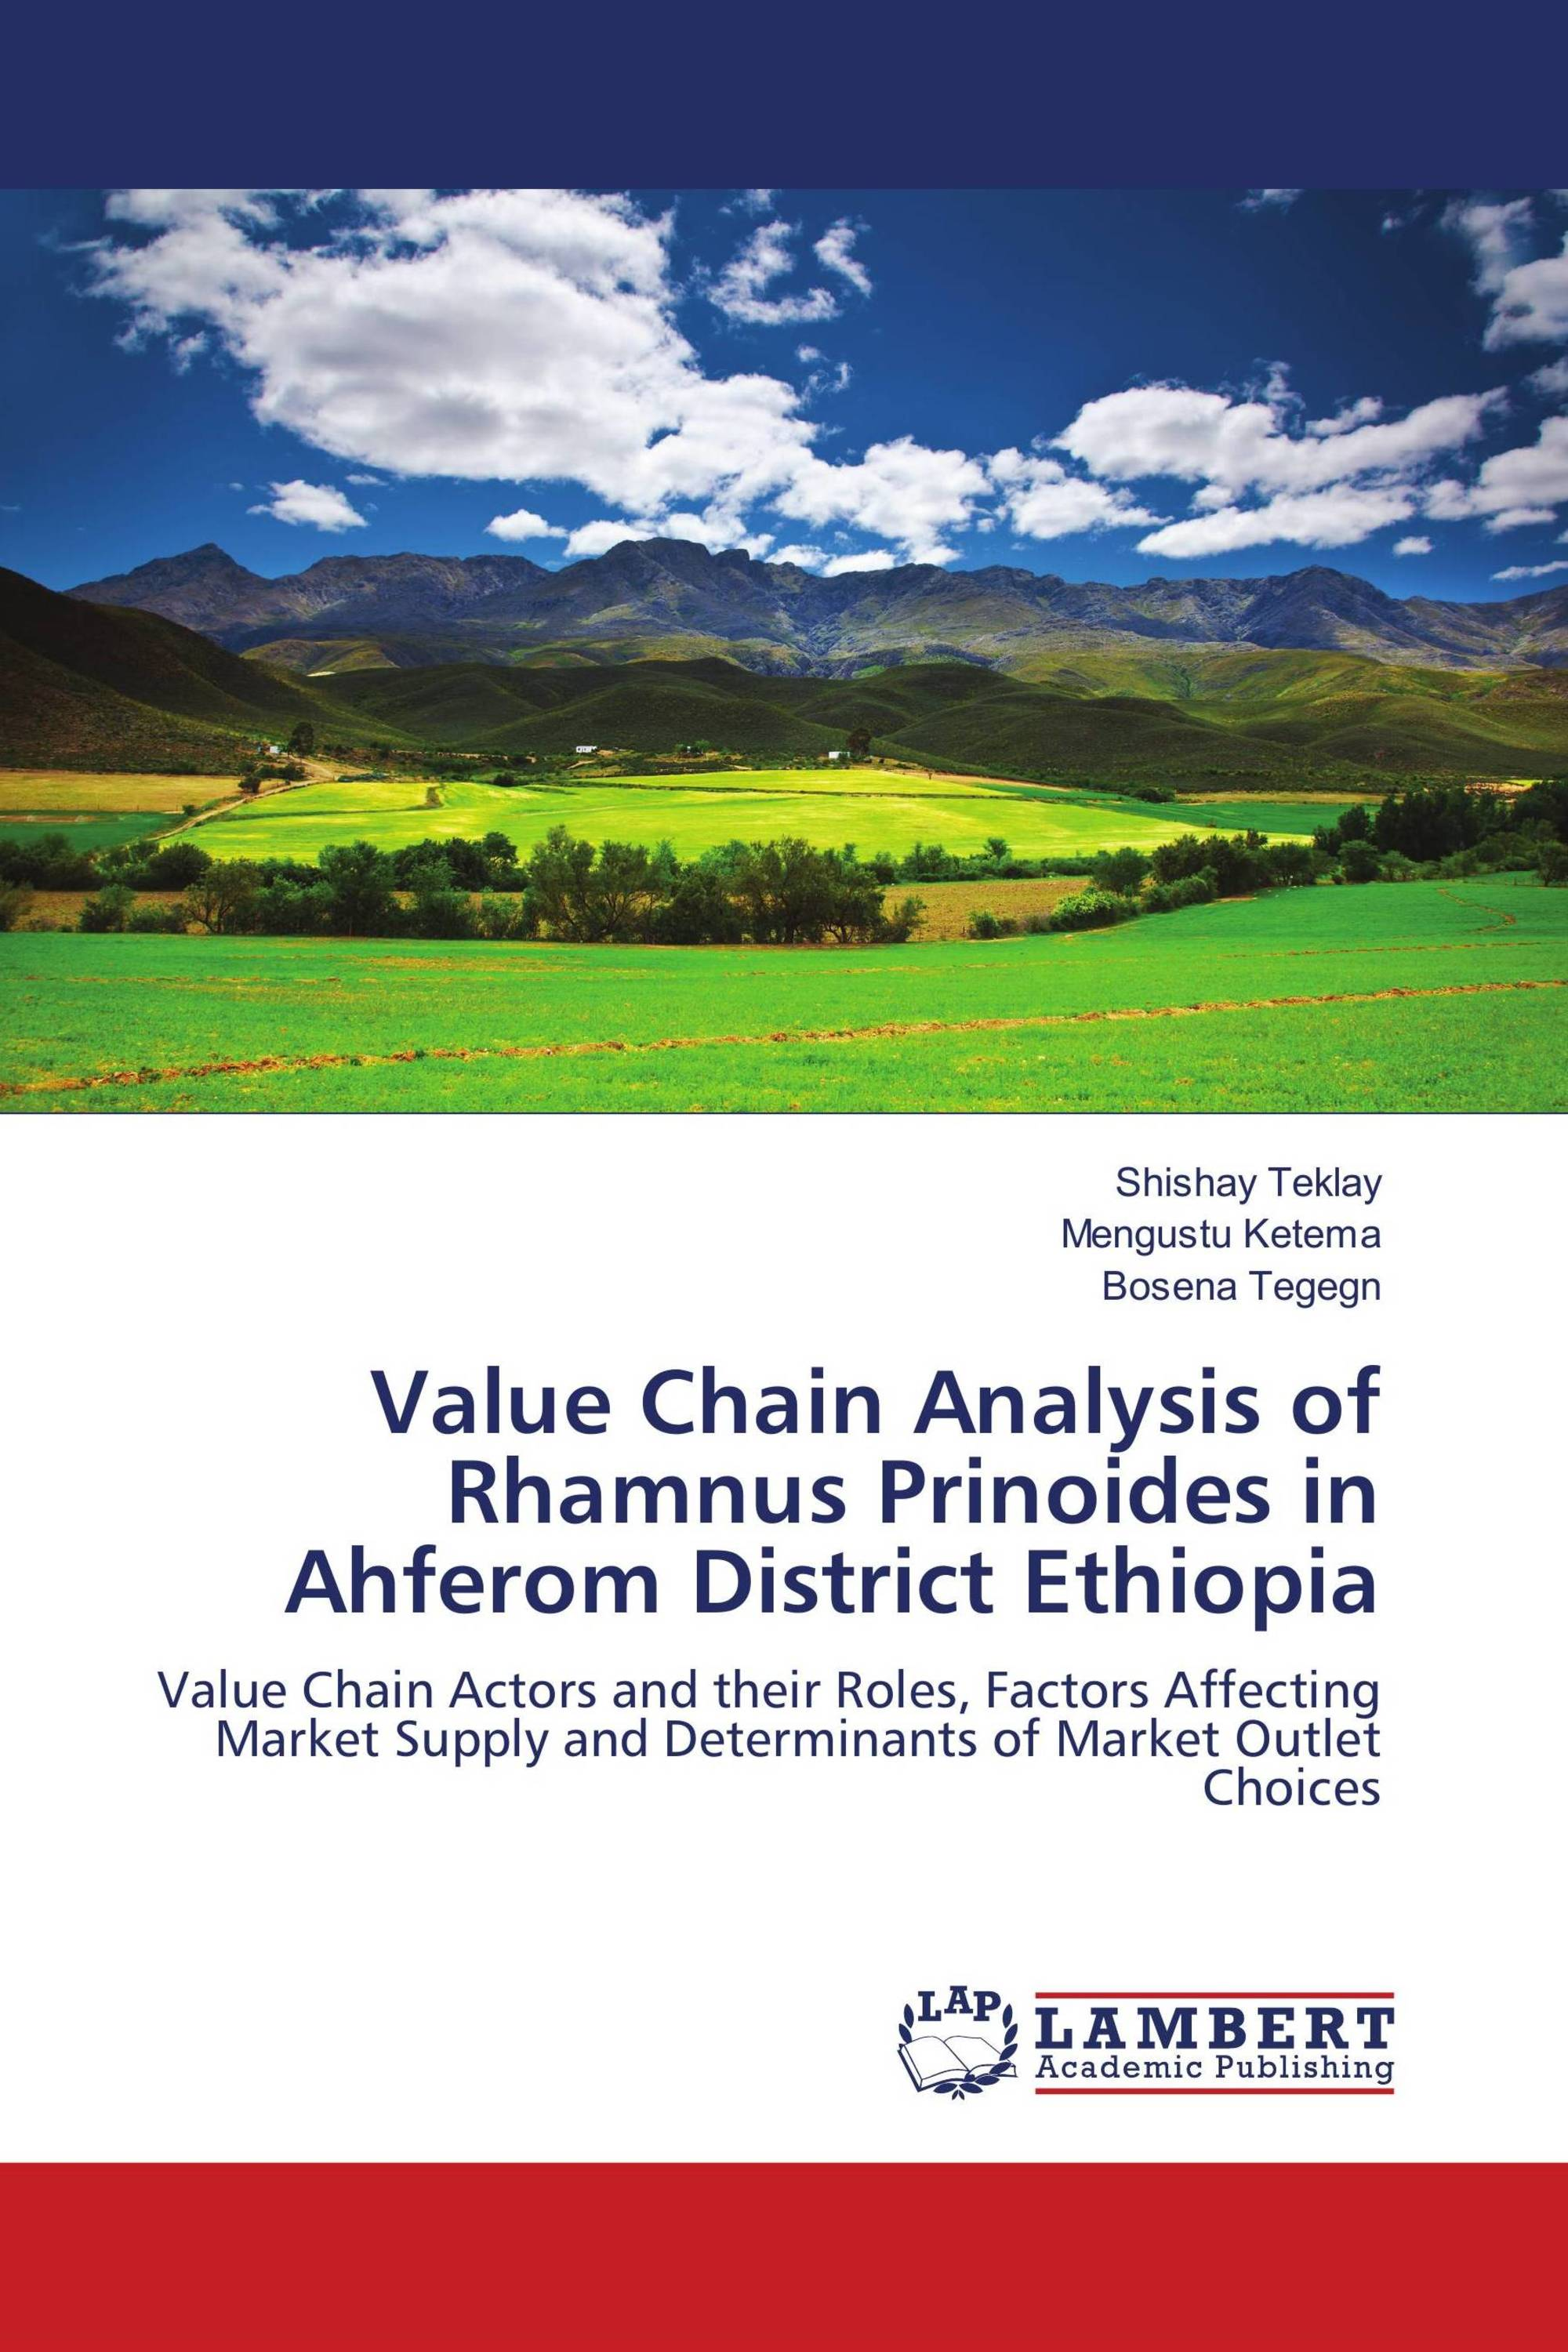 Value Chain Analysis of Rhamnus Prinoides in Ahferom District